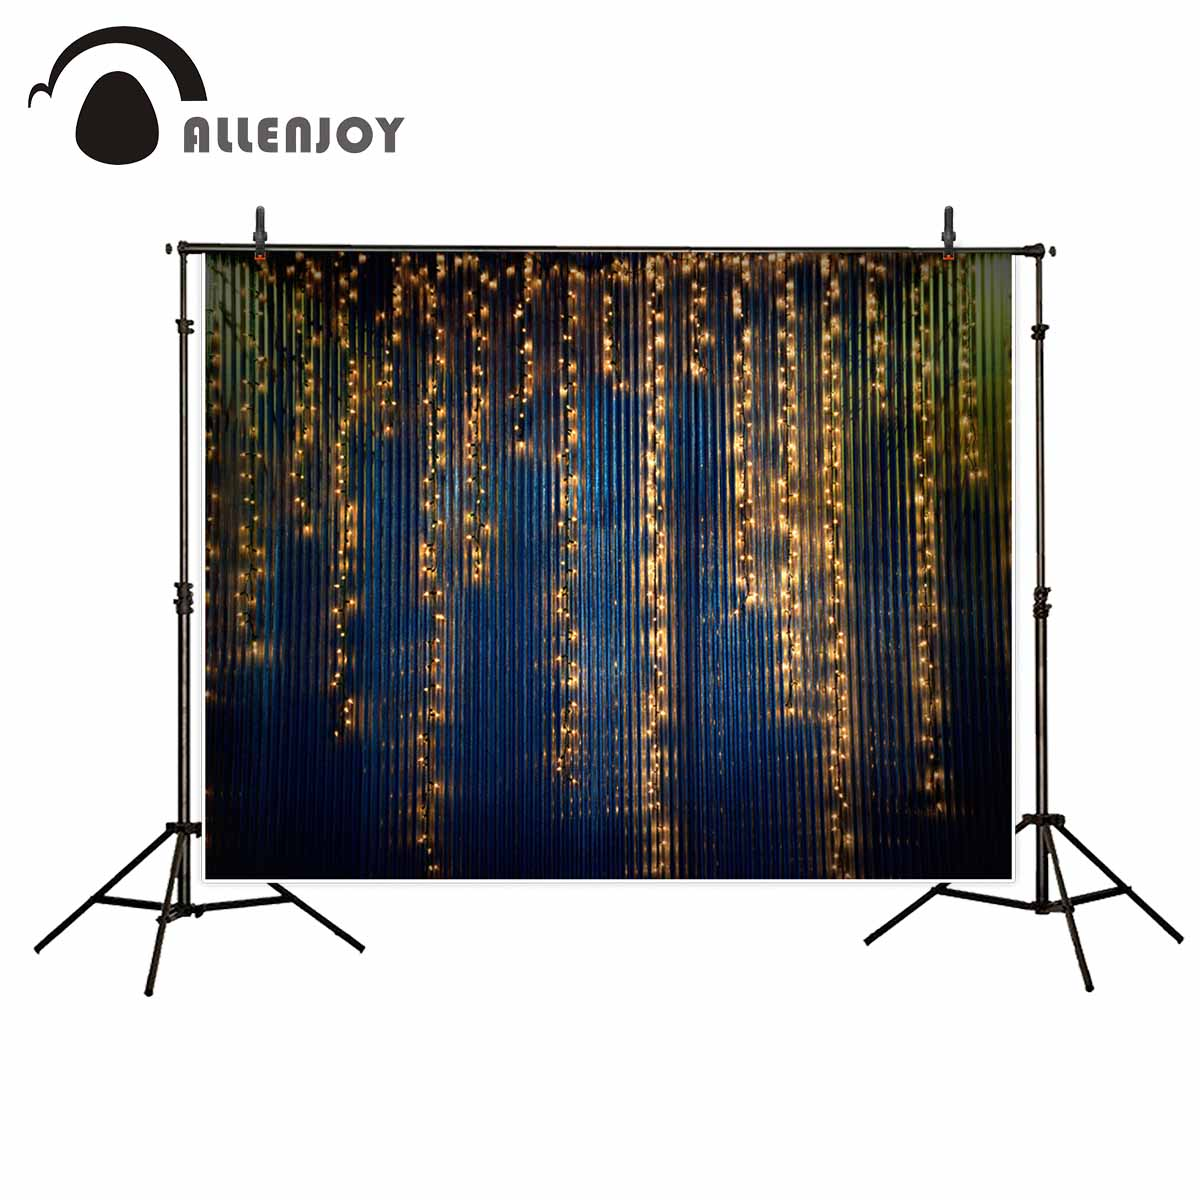 Allenjoy photography backdrops Golden bulbs vintage metal wall wedding background photo backdrop new photographic backdrops